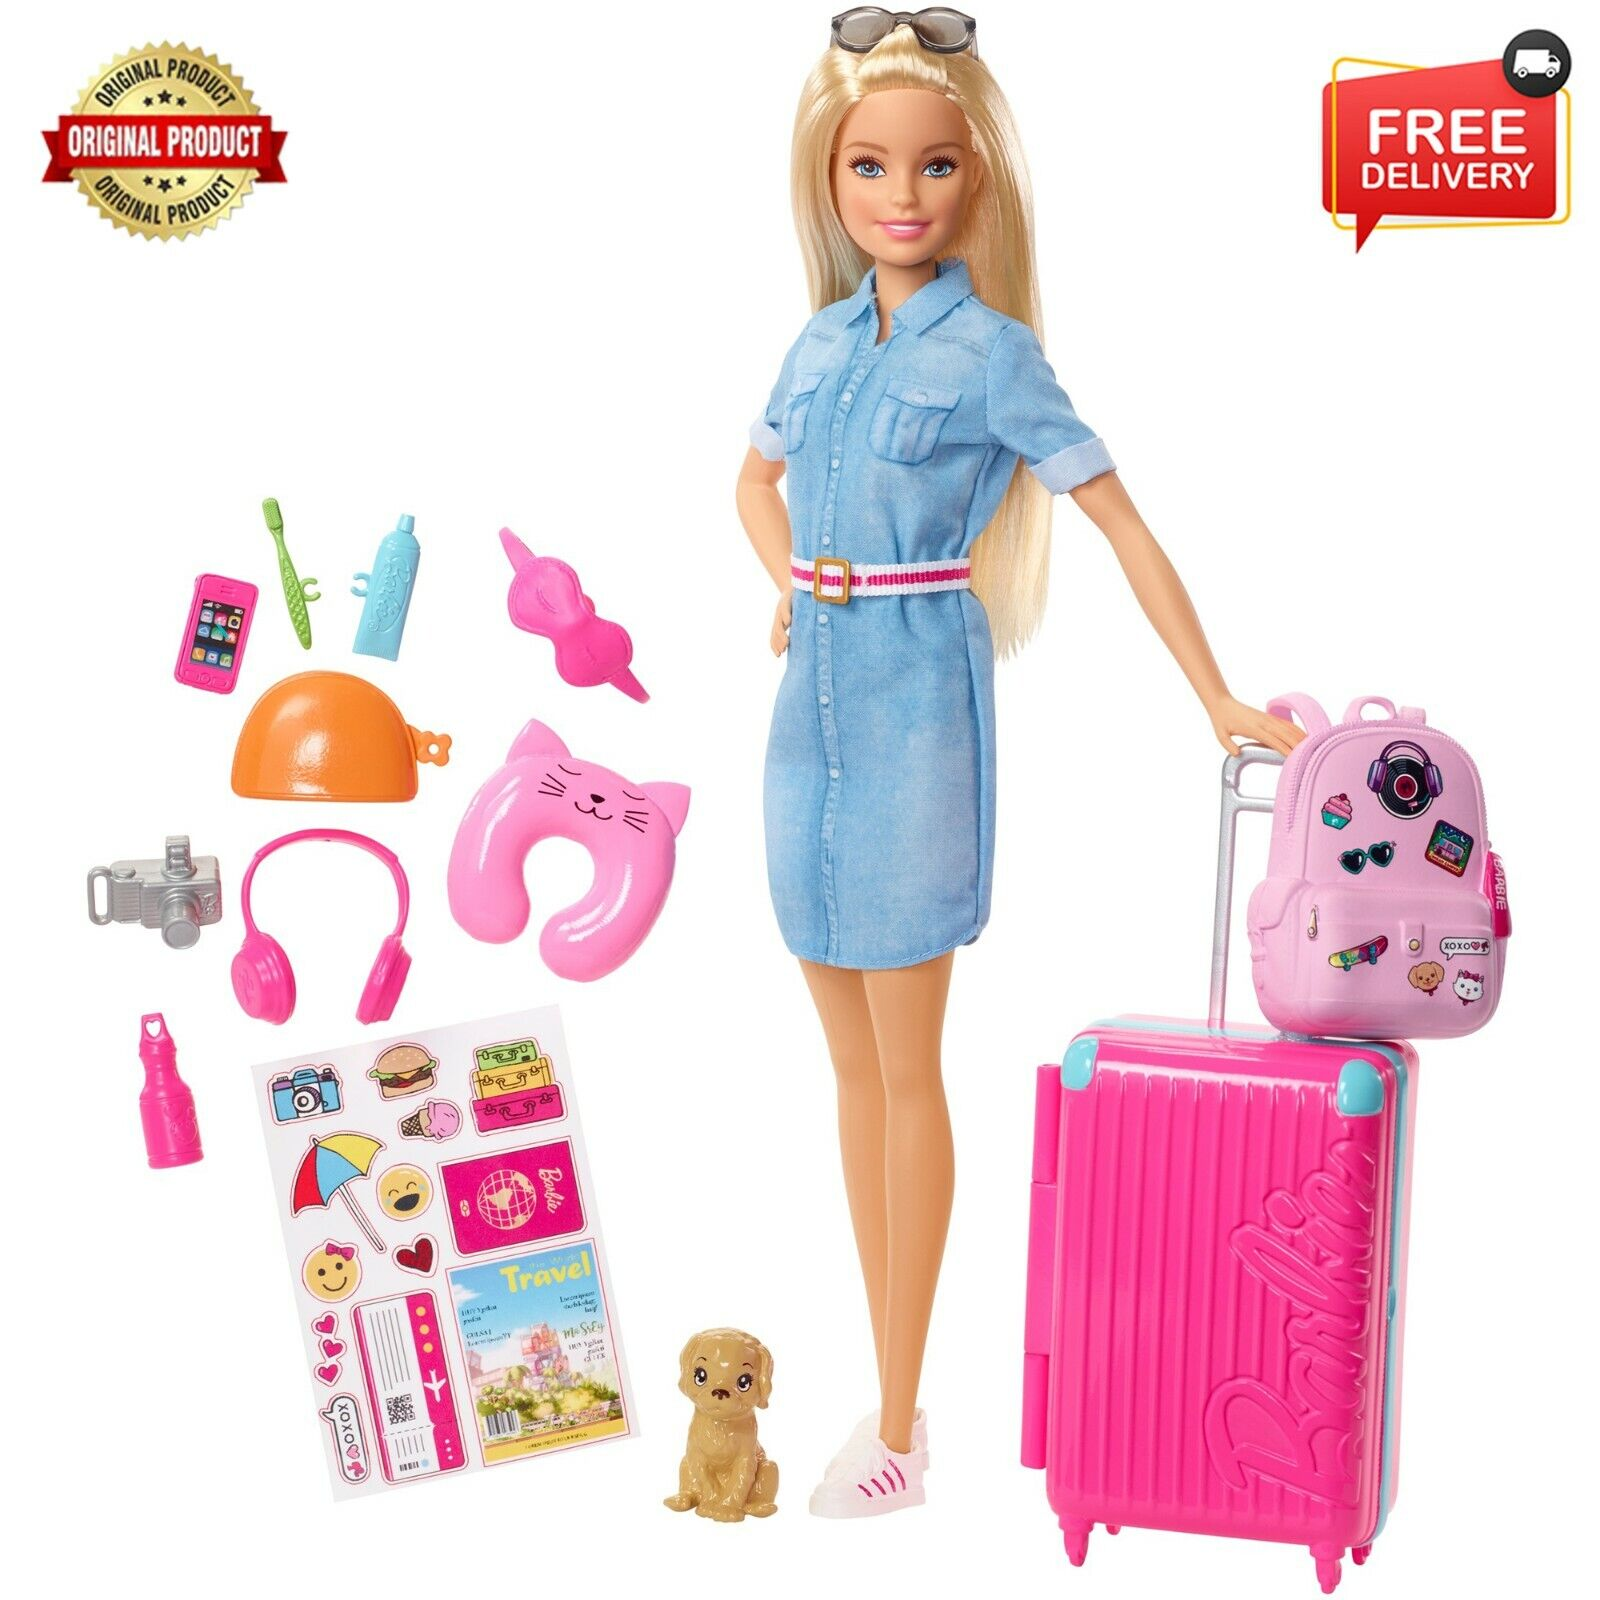 New Barbie Doll and Travel Set with Puppy, Luggage & 10+ Accessories